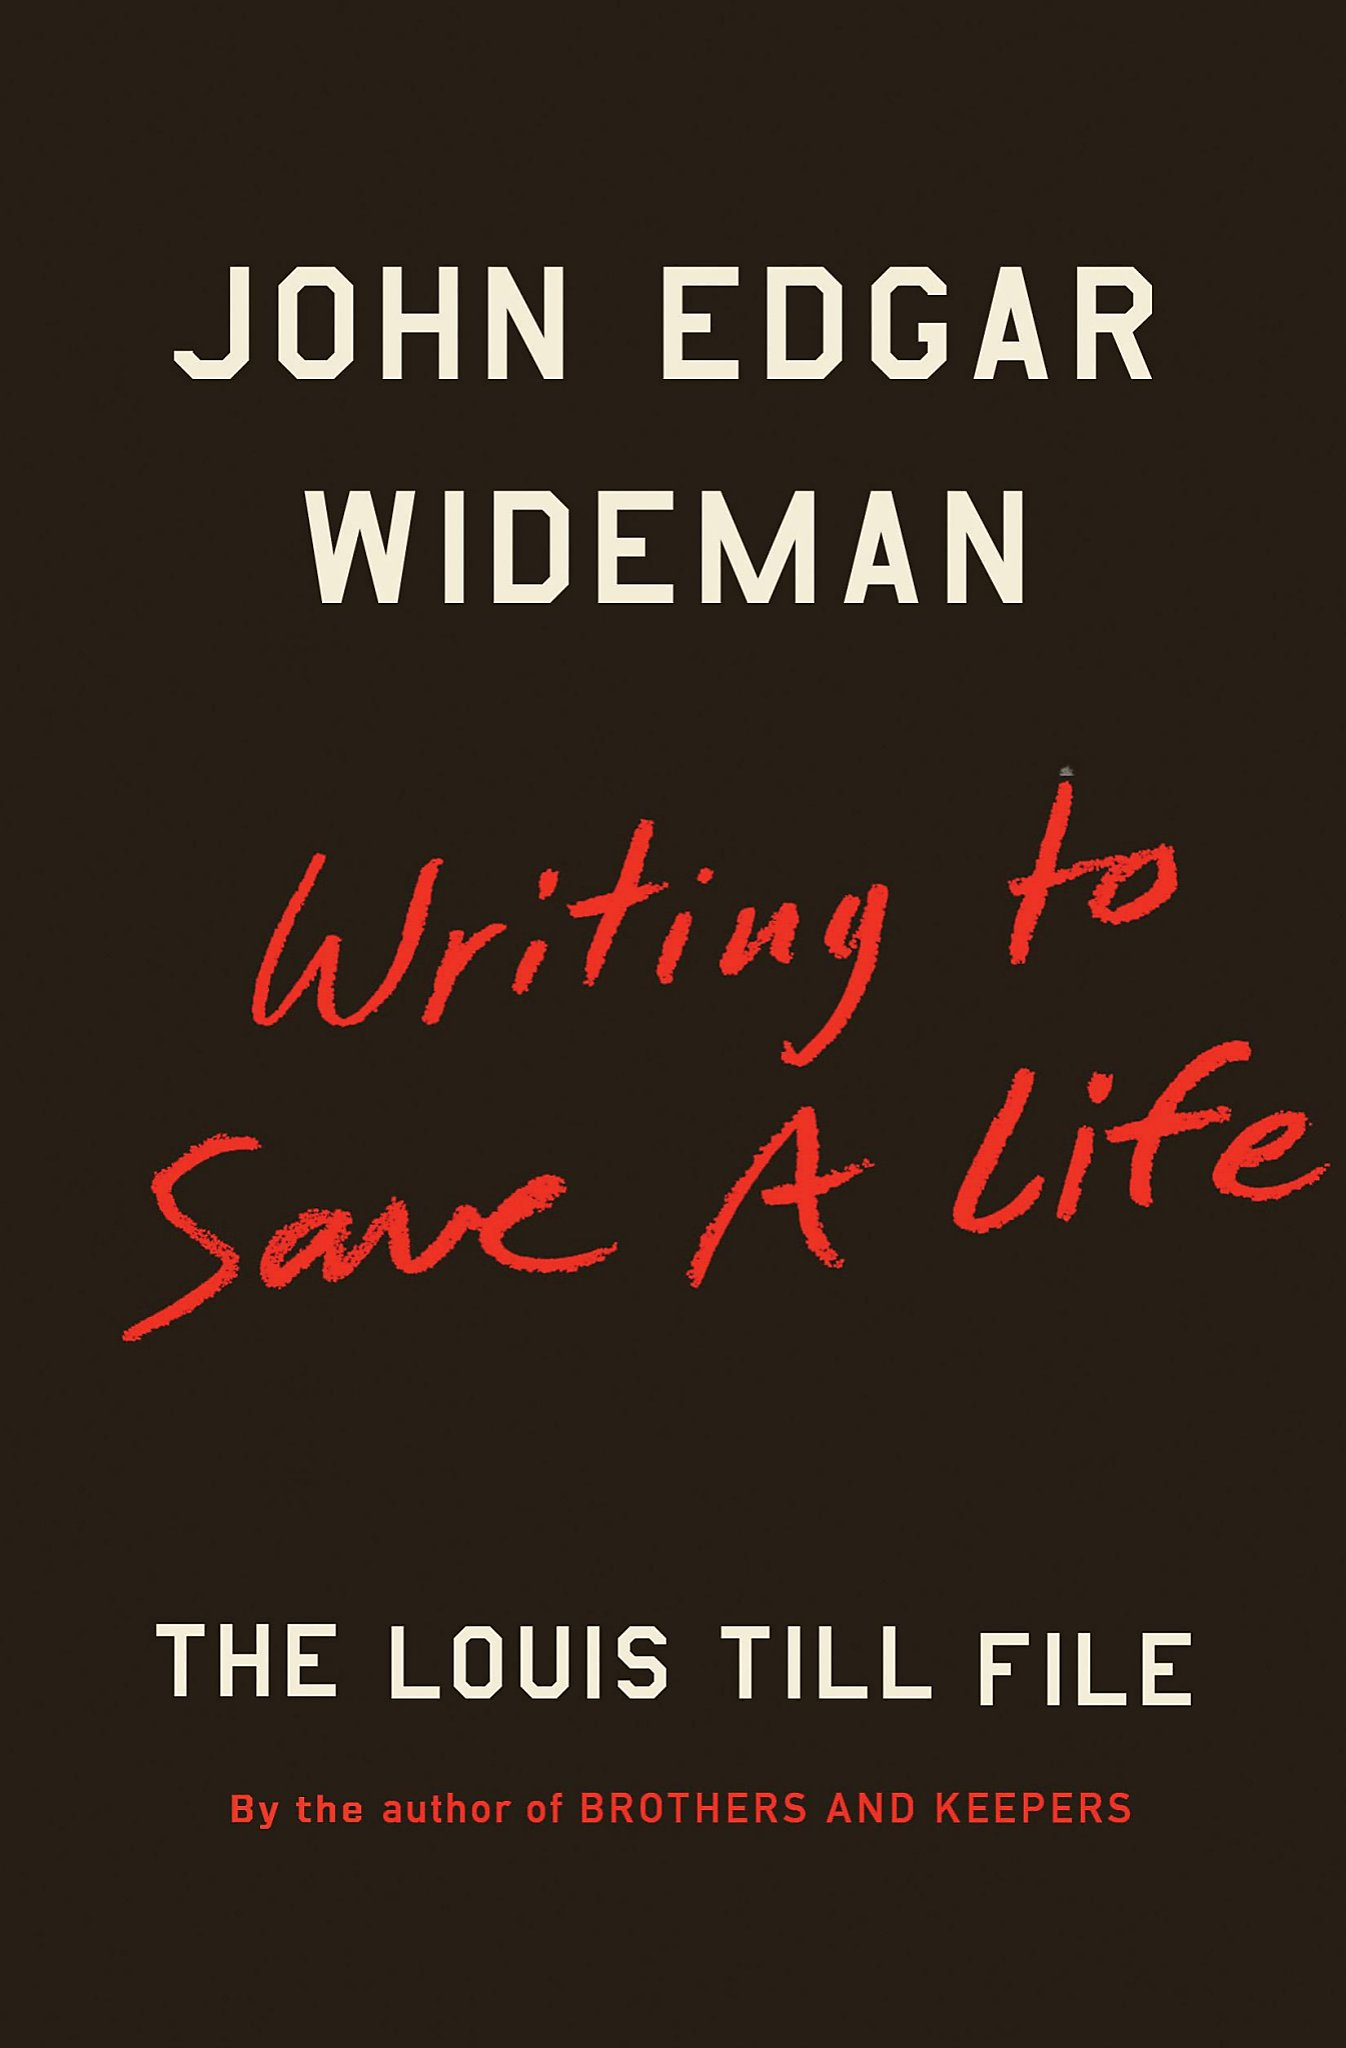 our time by john wideman essay 8:00 english 110 paper 1, rough draft response to john wideman our time john wideman's our time portrays a different side of a convicted felon that is often never seen.